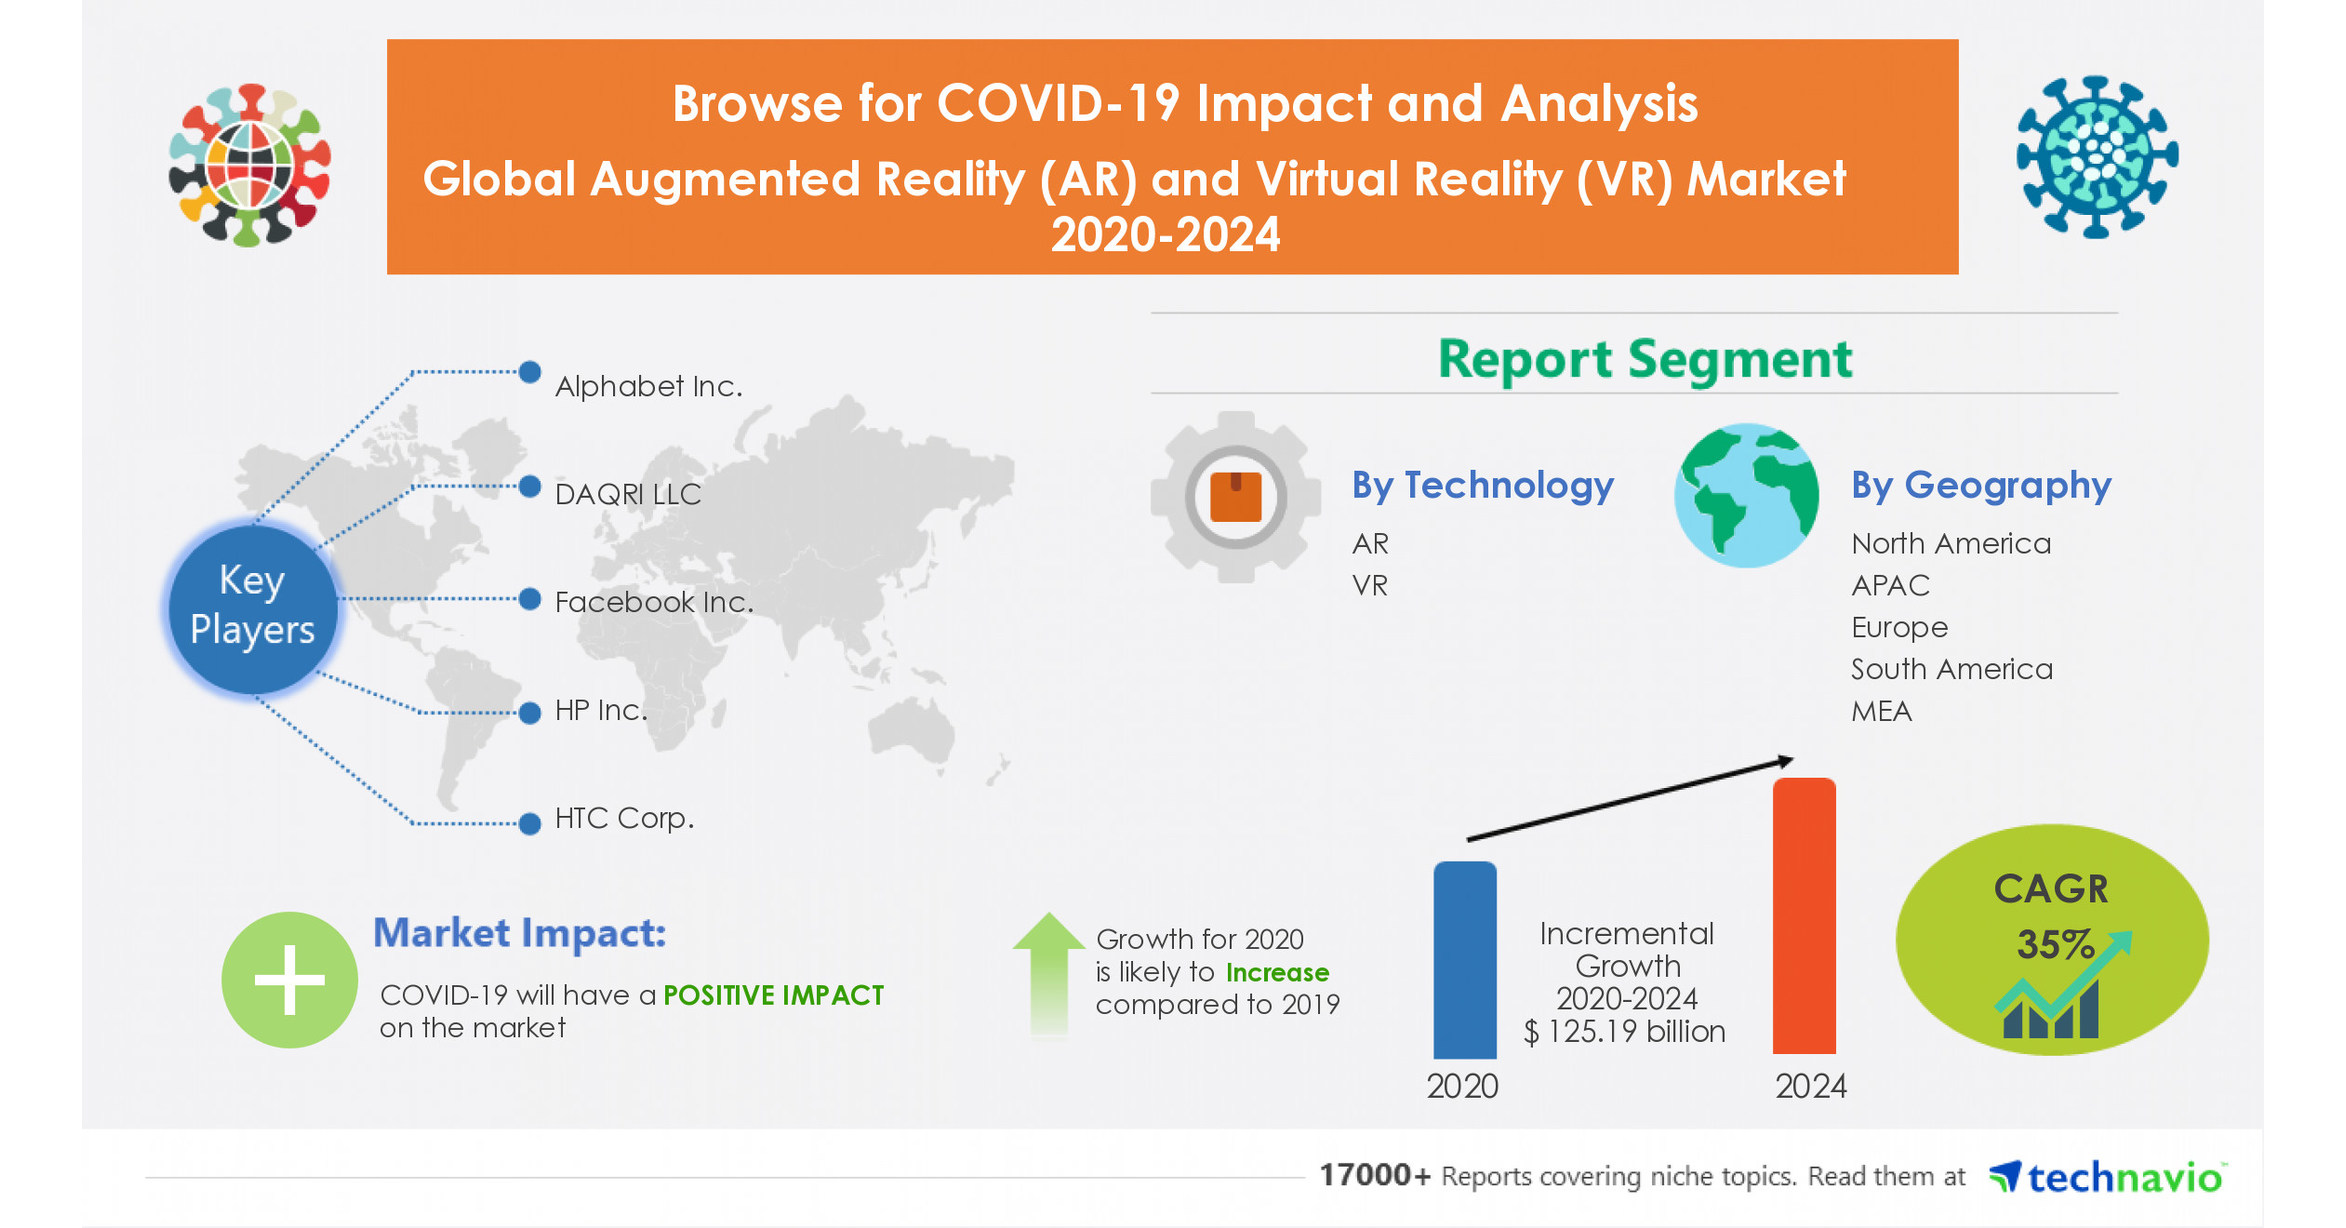 Growth over $ 125 billion in the global augmented reality (AR) market and the virtual reality market (VR) 2020-2024 |  Insight into the offers of key suppliers and market forecast for the new normal